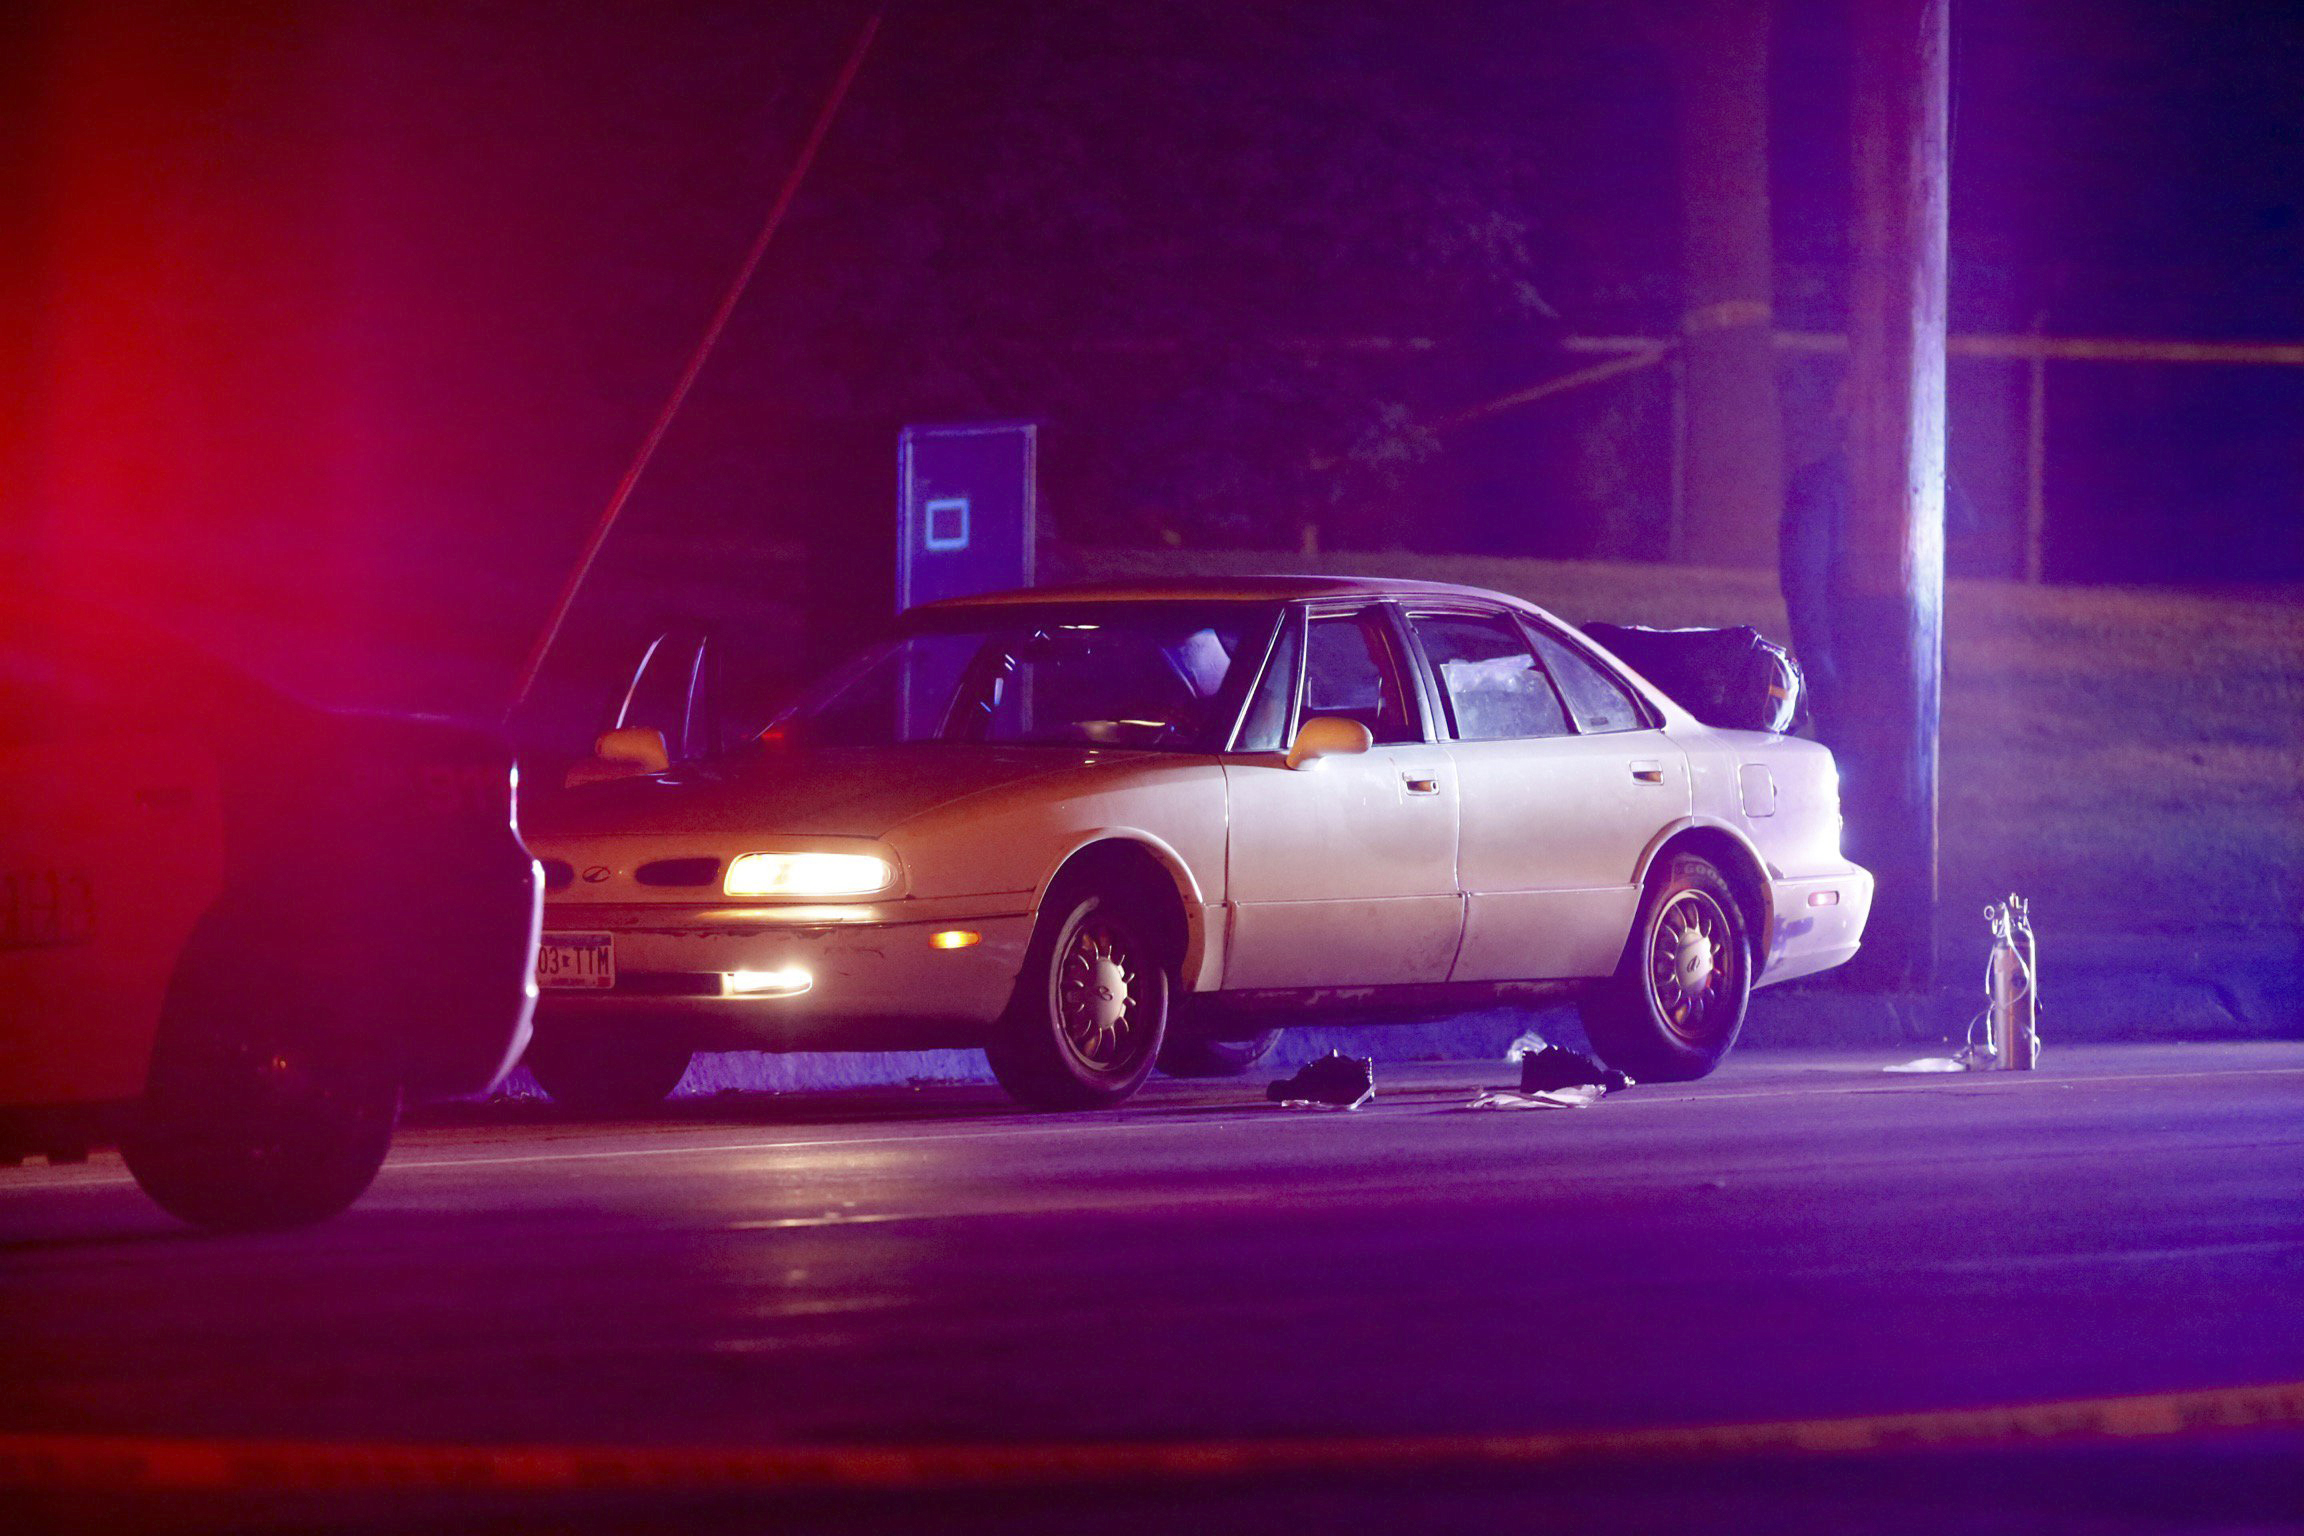 A car at the scene of a shooting of a man involving a St. Anthony Park Police officer in Falcon Heights, Minn., on July 6, 2016.